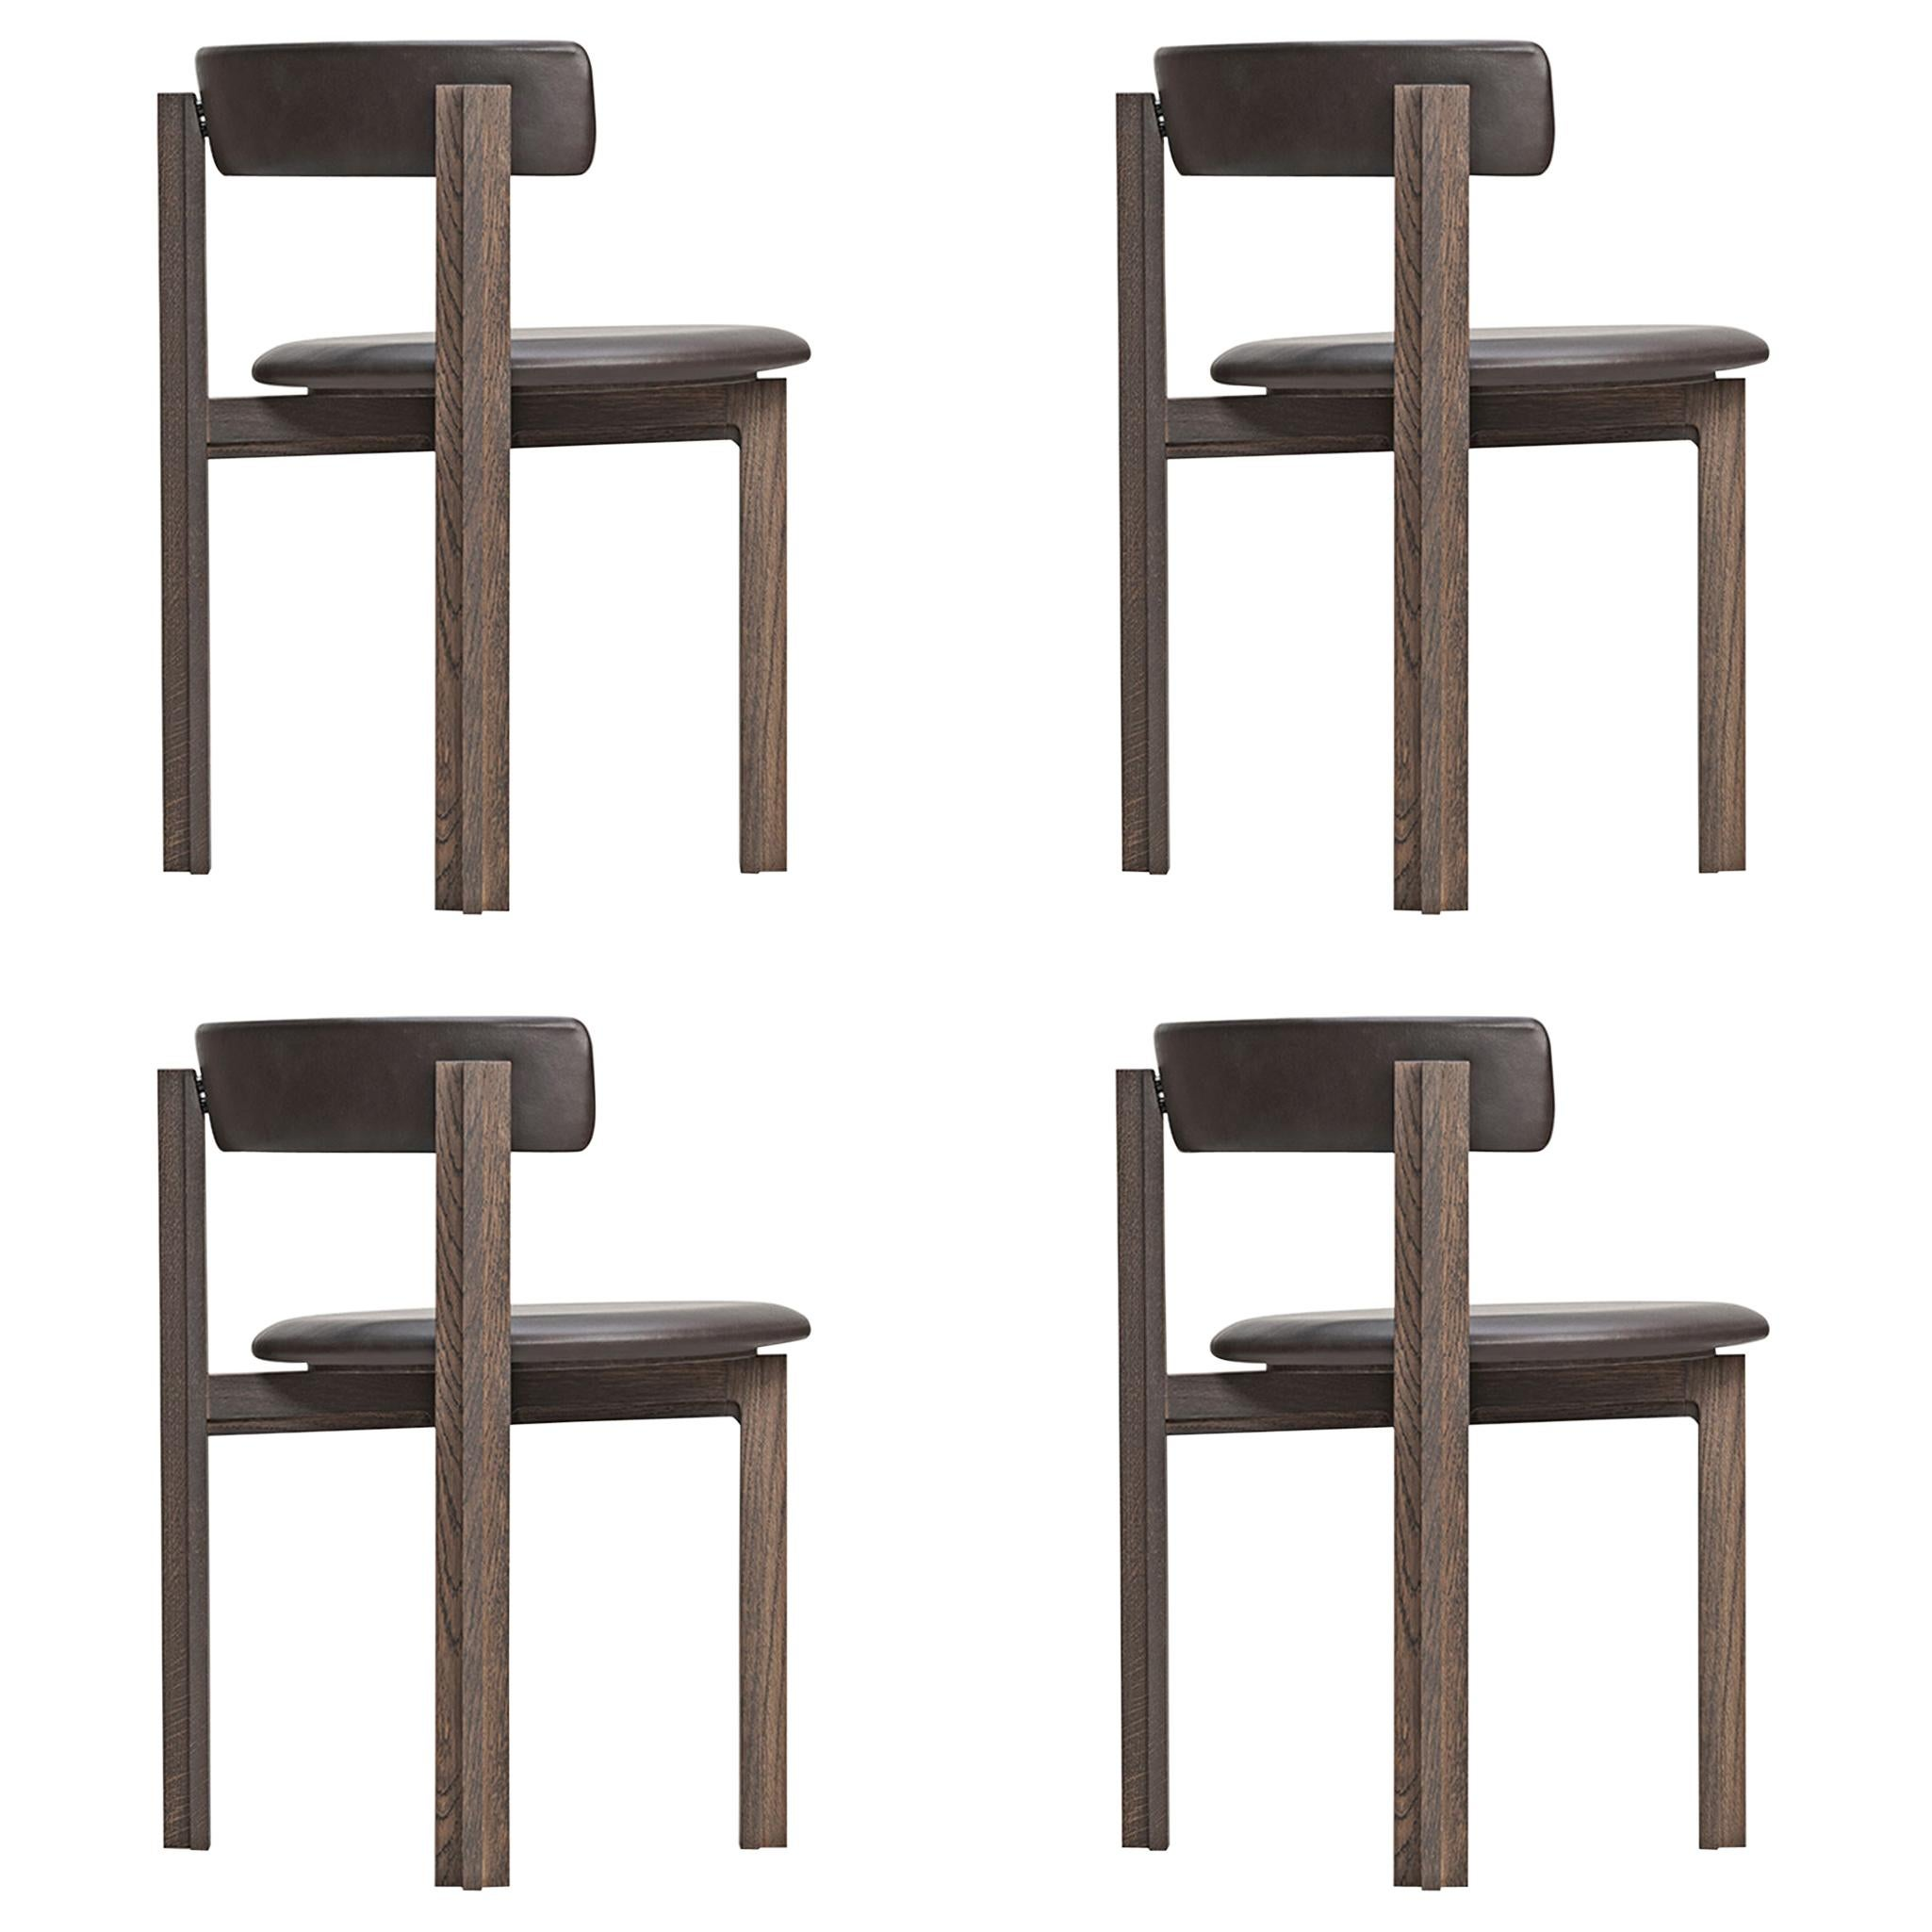 Set of Four Principal Dining Wood Chairs Designed by Bodil Kjær